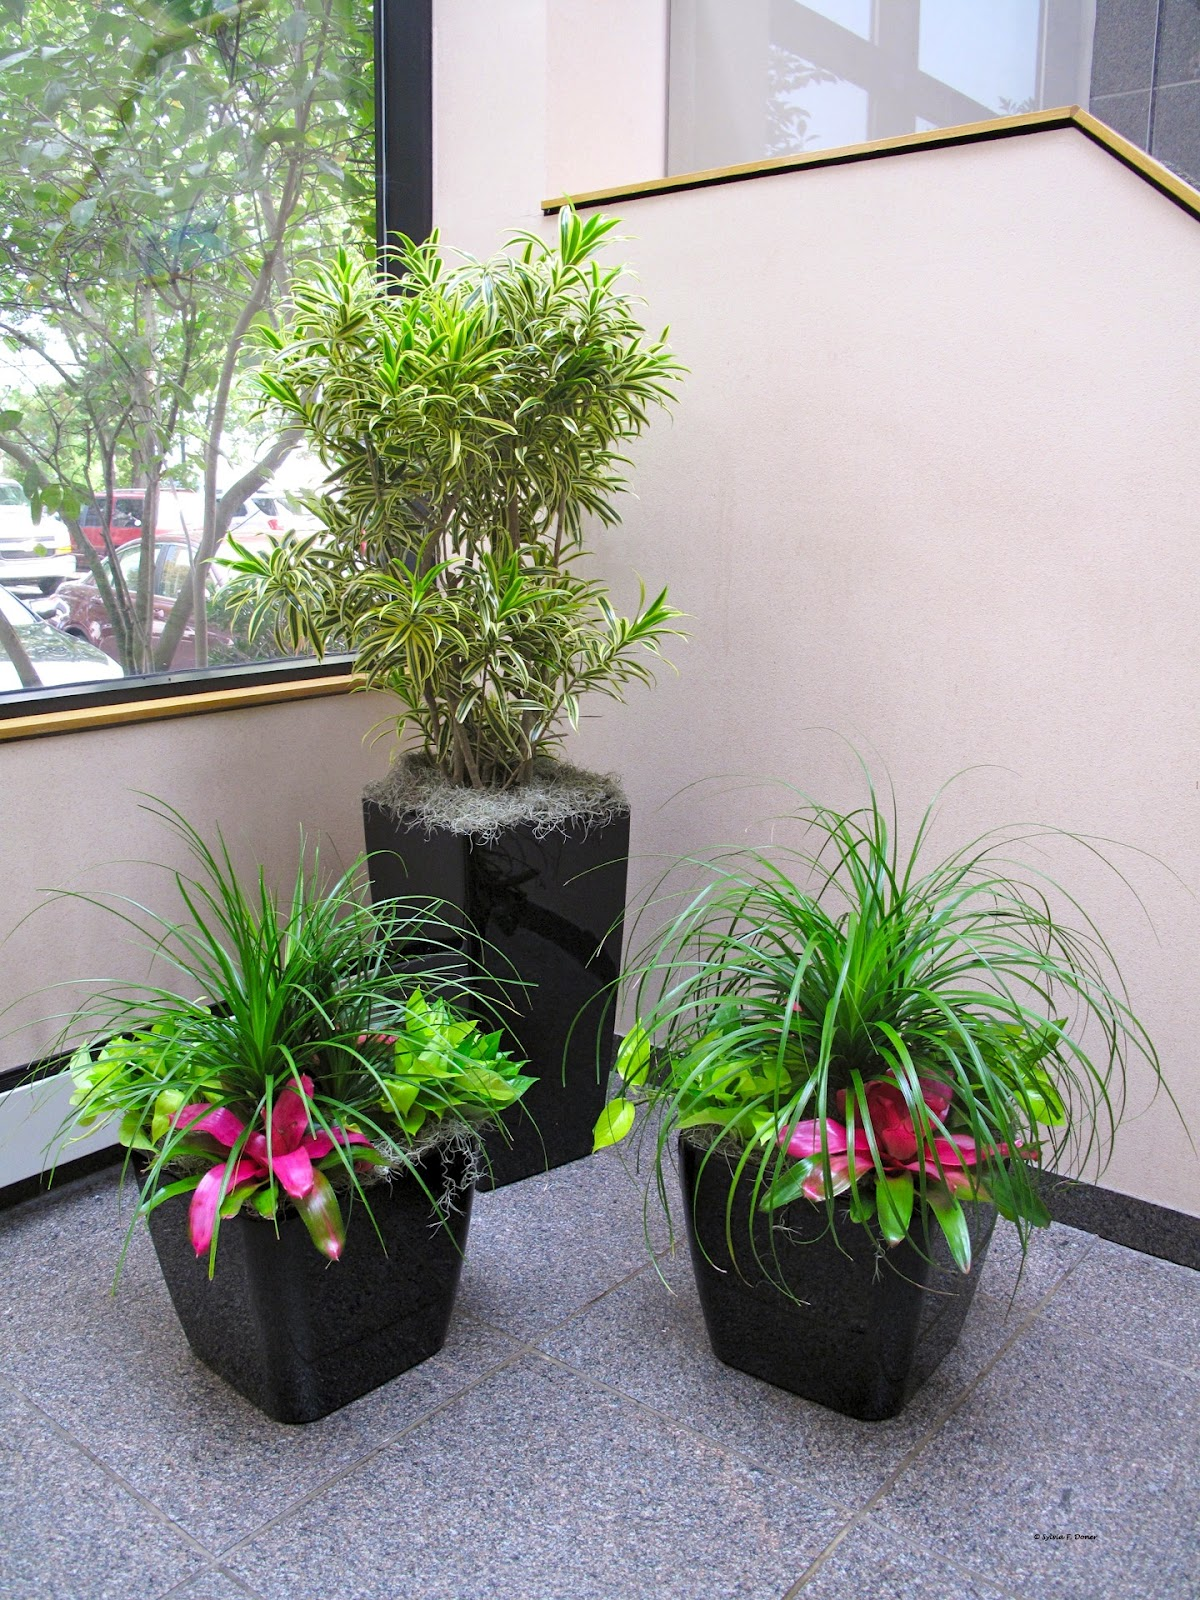 How to properly install interior house plants plants Interior design plants inside house